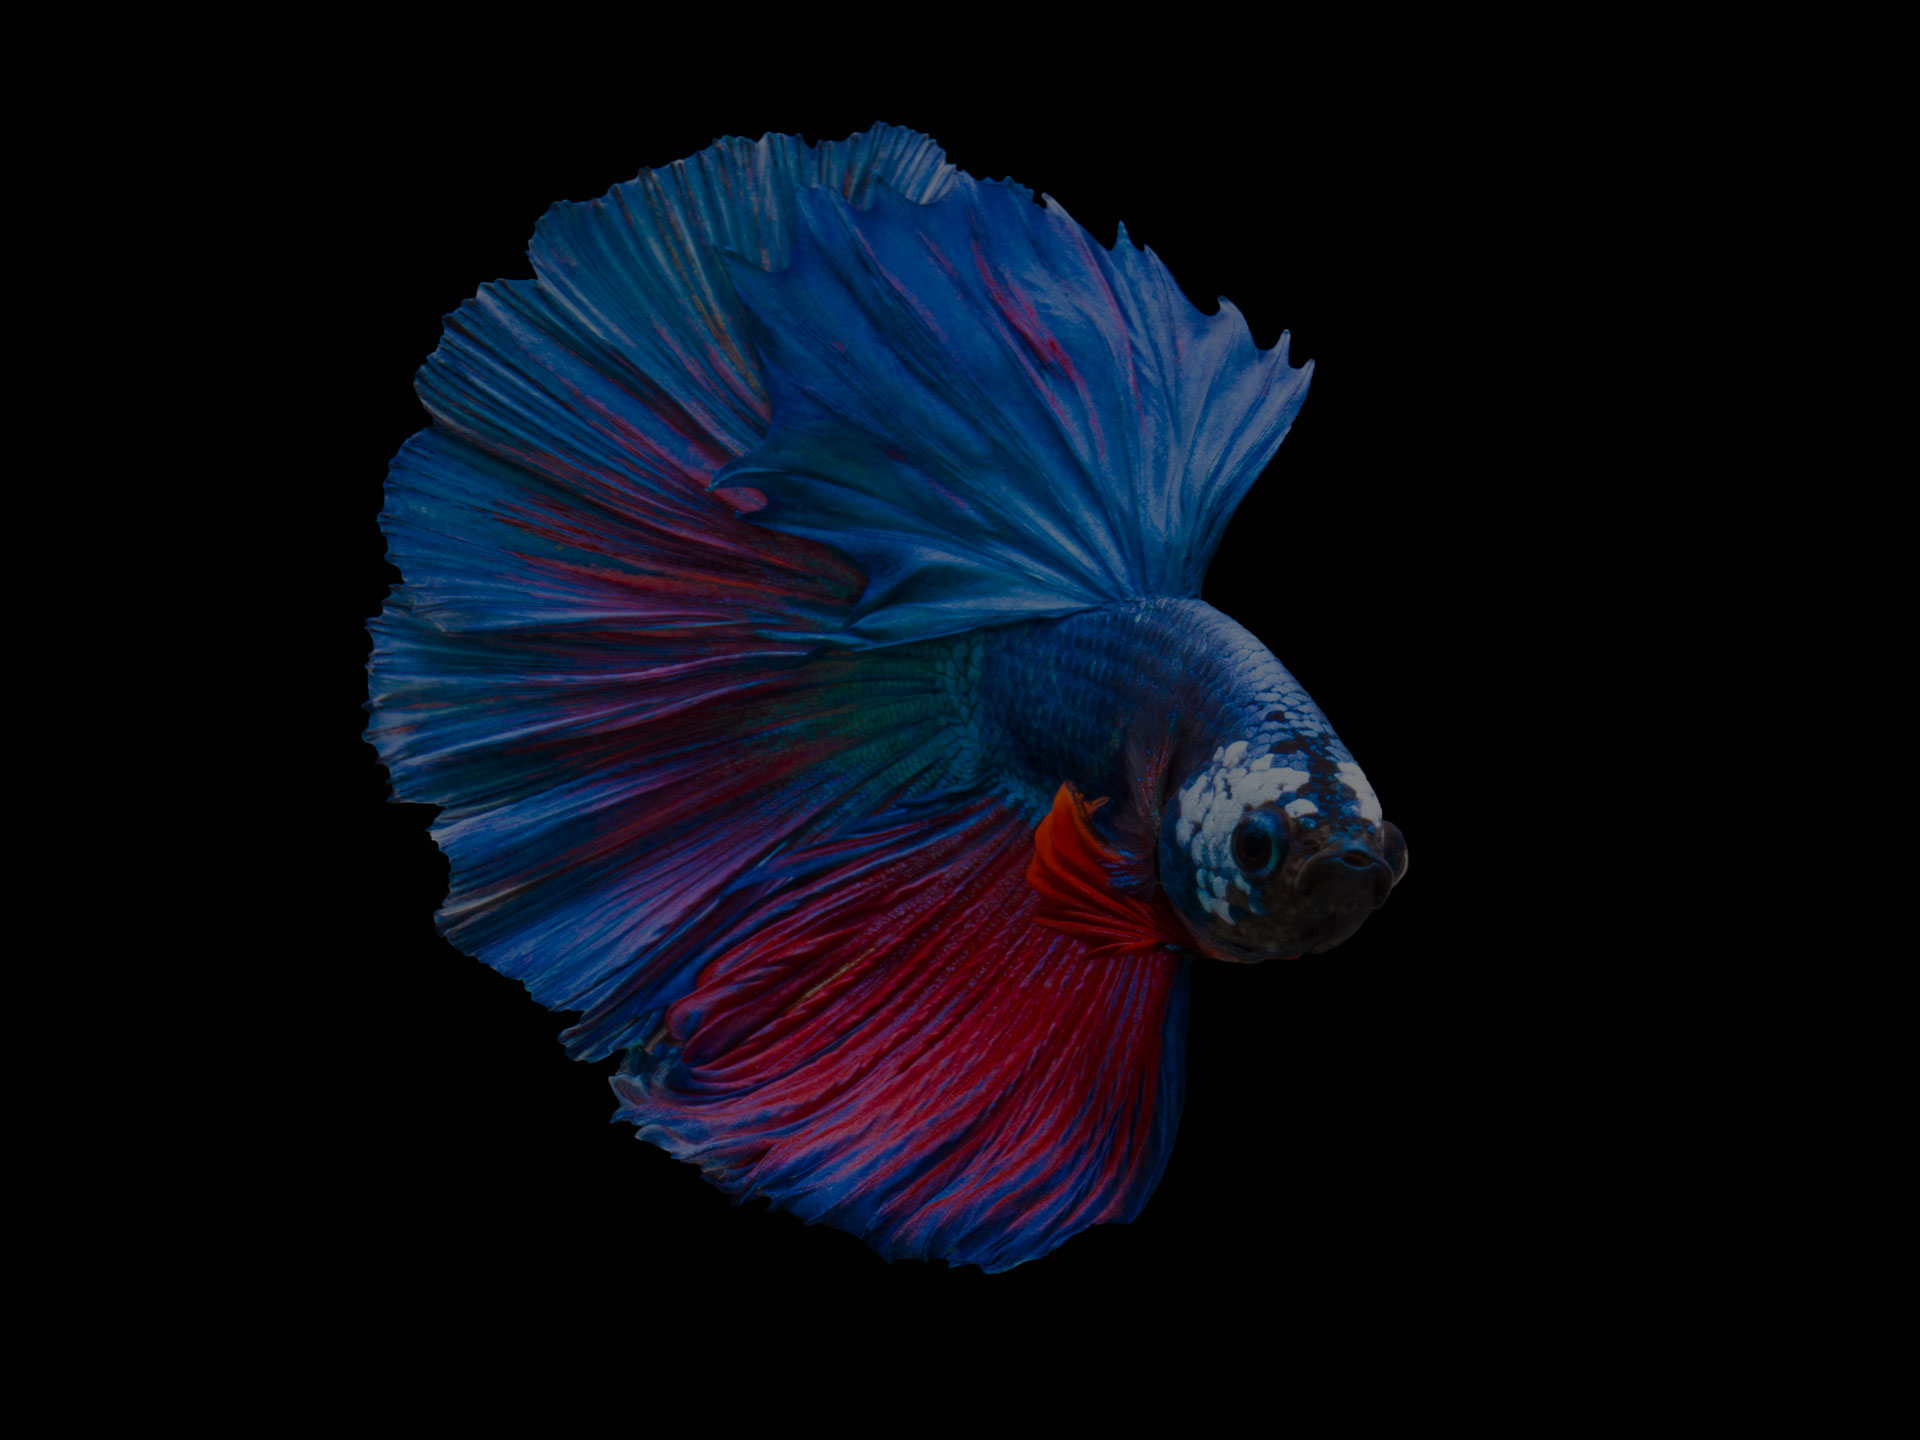 Multi color Siamese fighting fish(Rosetail),fighting fish,Betta splendens,on black background - Image